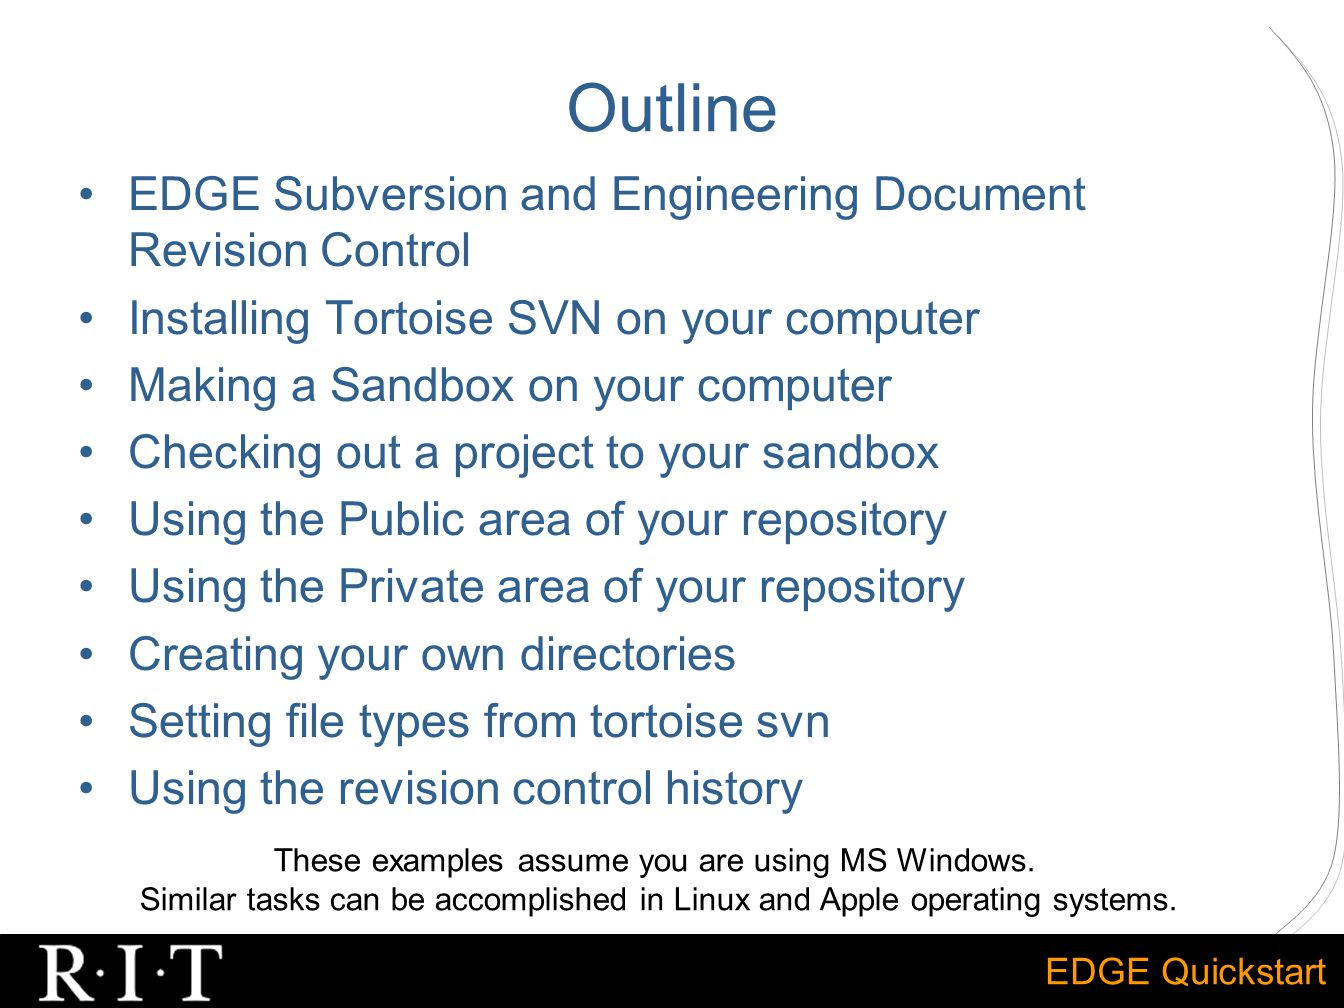 EDGE Quickstart Outline EDGE Subversion and Engineering Document Revision Control Installing Tortoise SVN on your computer Making a Sandbox on your computer Checking out a project to your sandbox Using the Public area of your repository Using the Private area of your repository Creating your own directories Setting file types from tortoise svn Using the revision control history These examples assume you are using MS Windows.